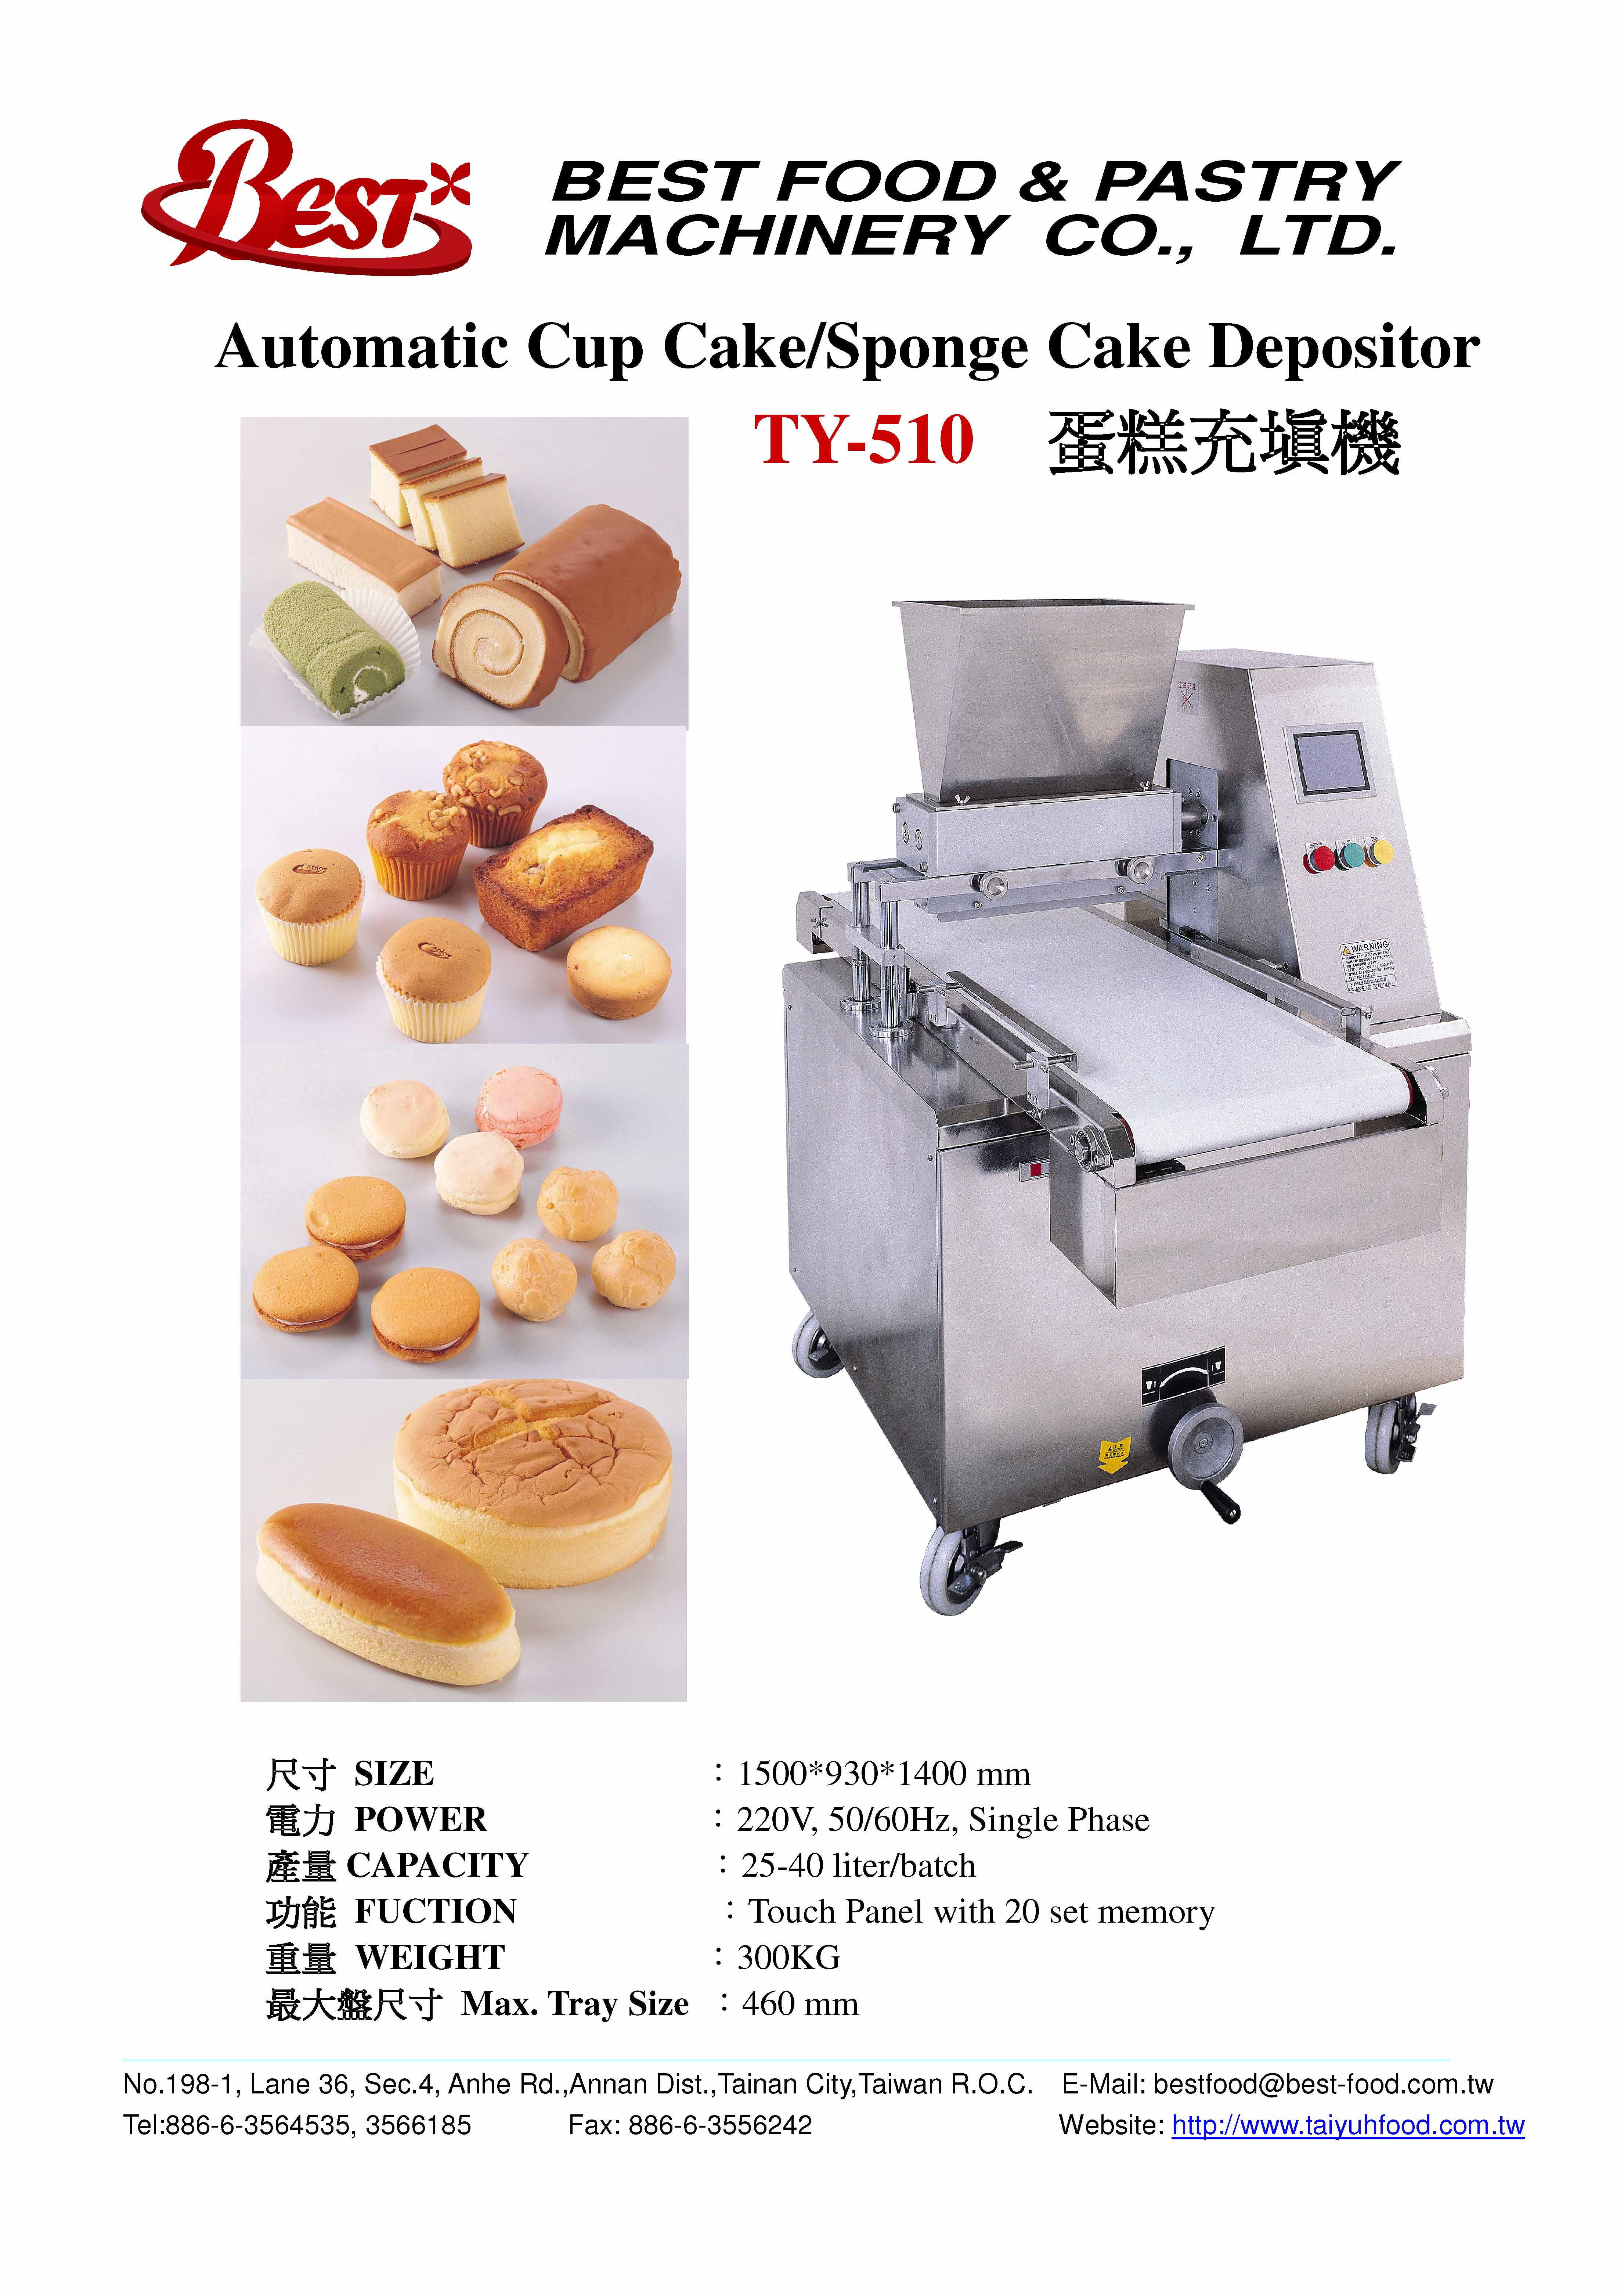 Automatic Cup Cake/Sponge Cake Depositor (TY-510) - Tai Yuh Machine Enterprise Ltd.